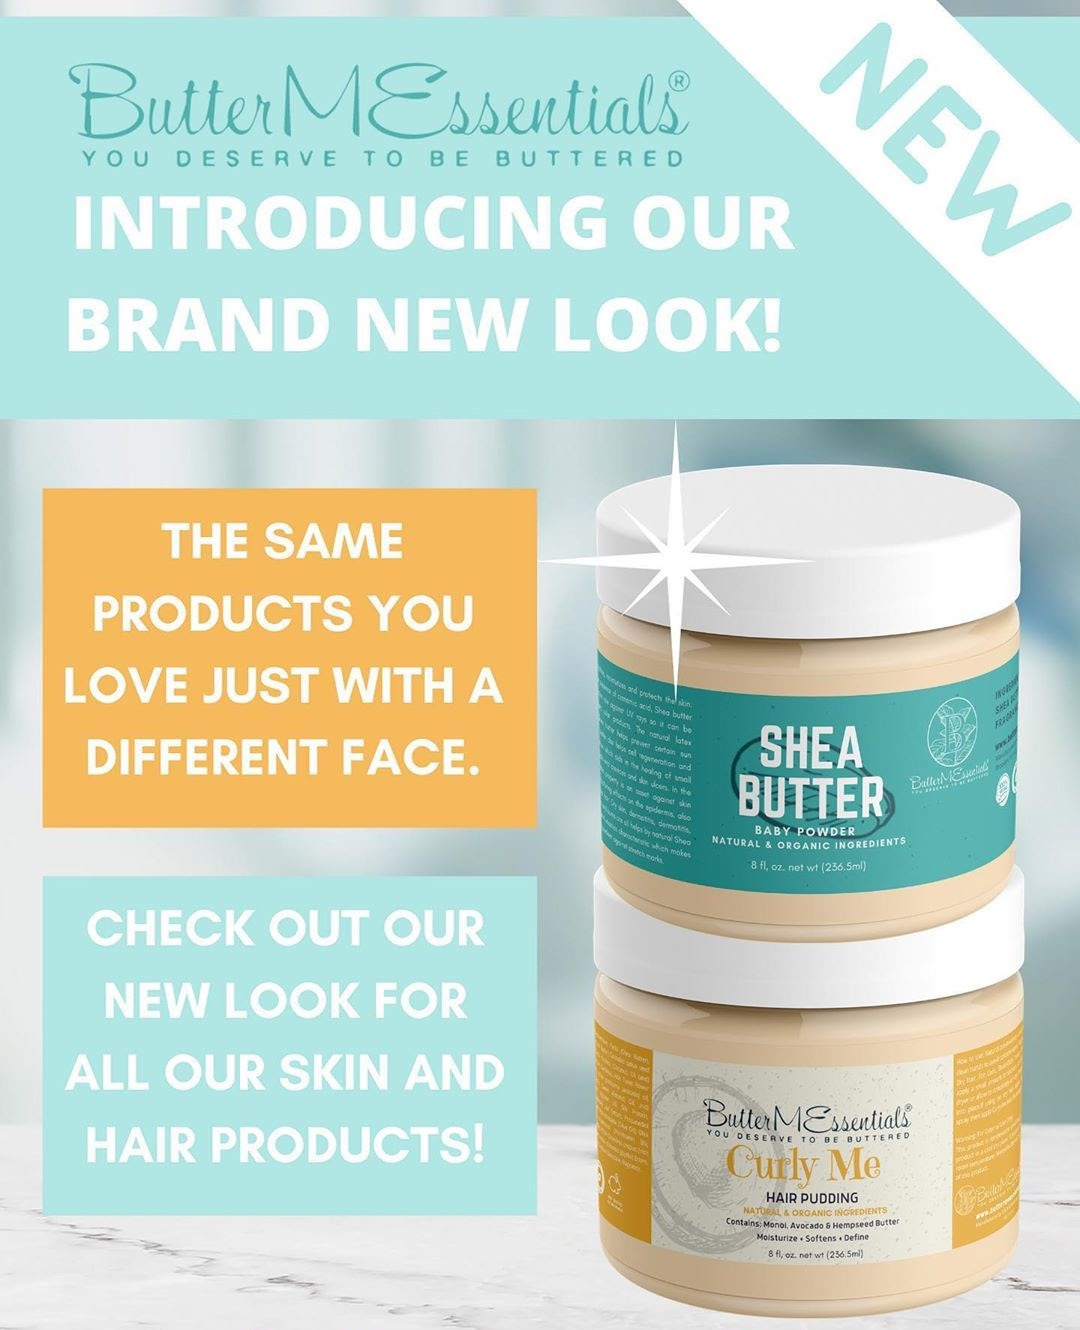 Natural Hair and Body Company ButterMEssentials Unveils New Online Look